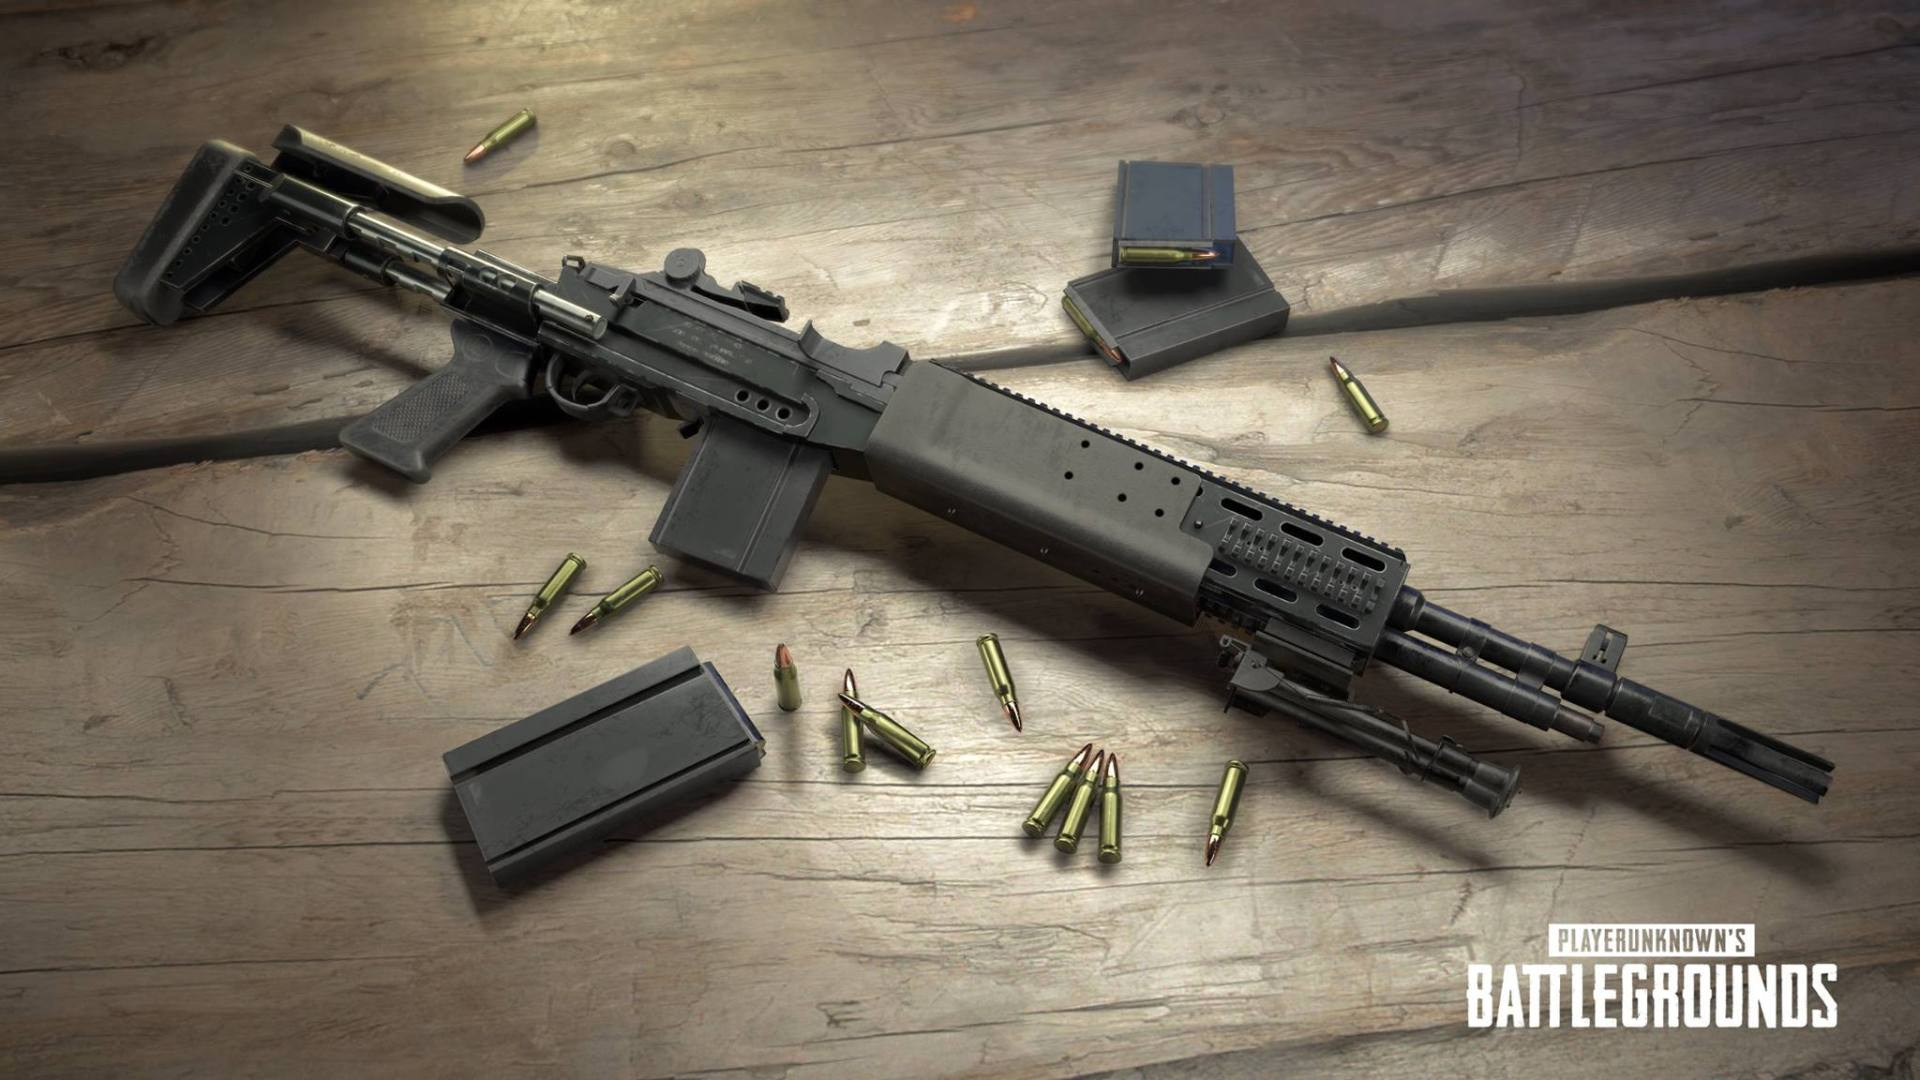 What PUBG Guns Look Like In Real Life